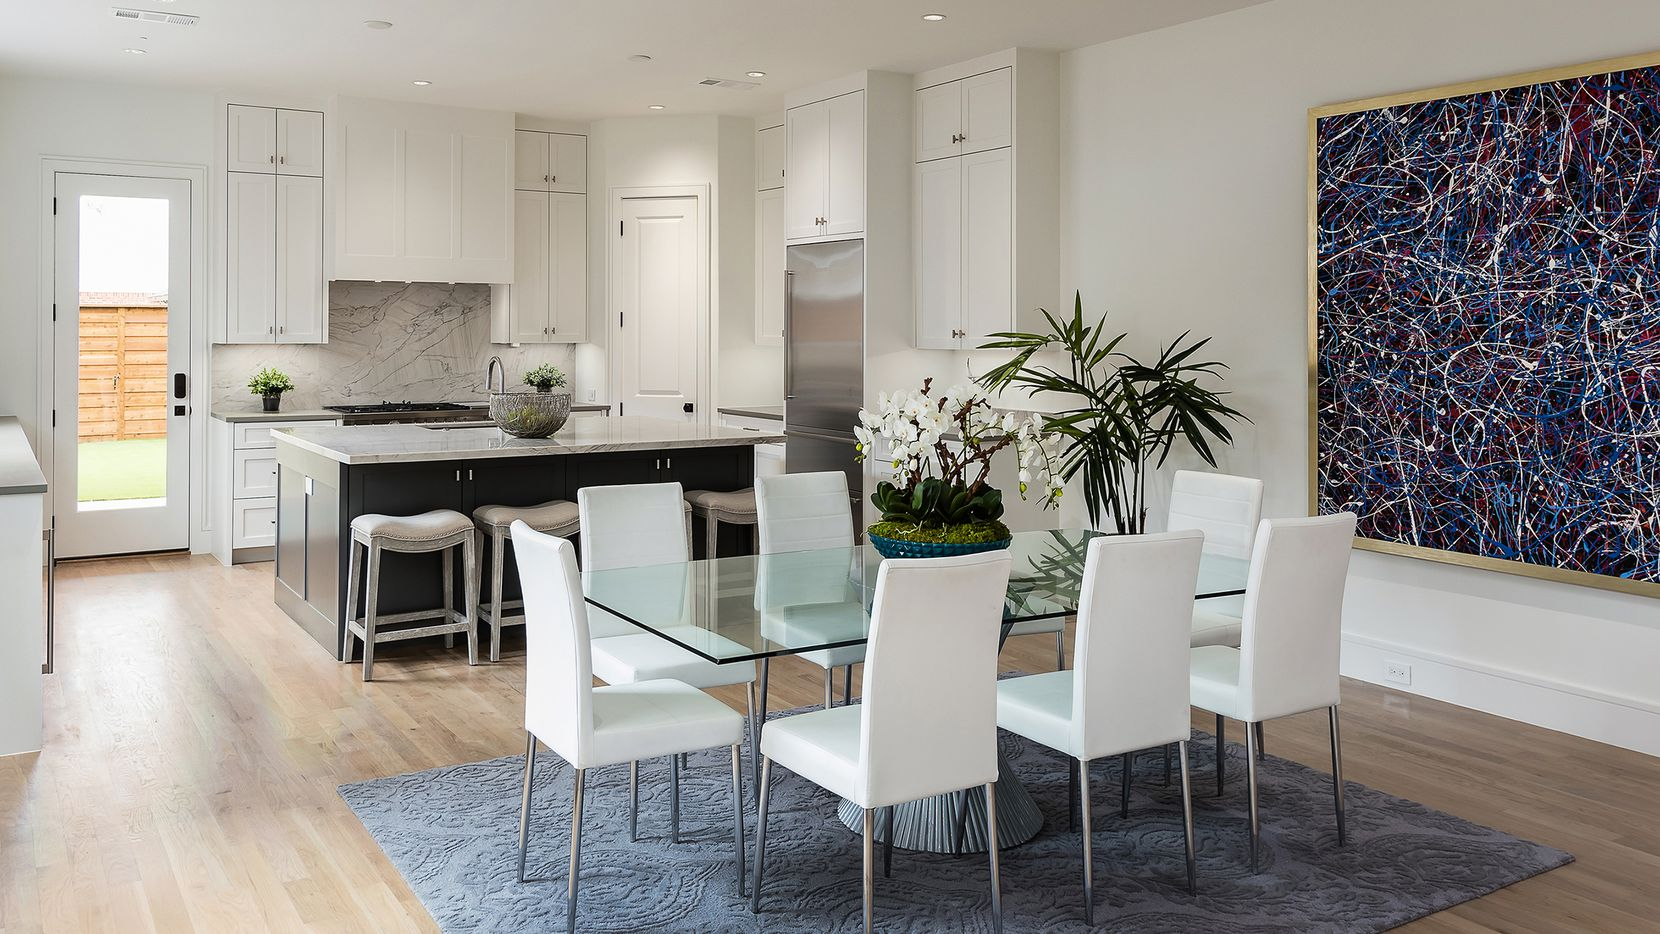 The four units at 5133 Miller Ave. and 5135 Miller Ave. were designed with fashion in mind. Pictured is the dining room and kitchen of a unit at 5133 Miller Ave.